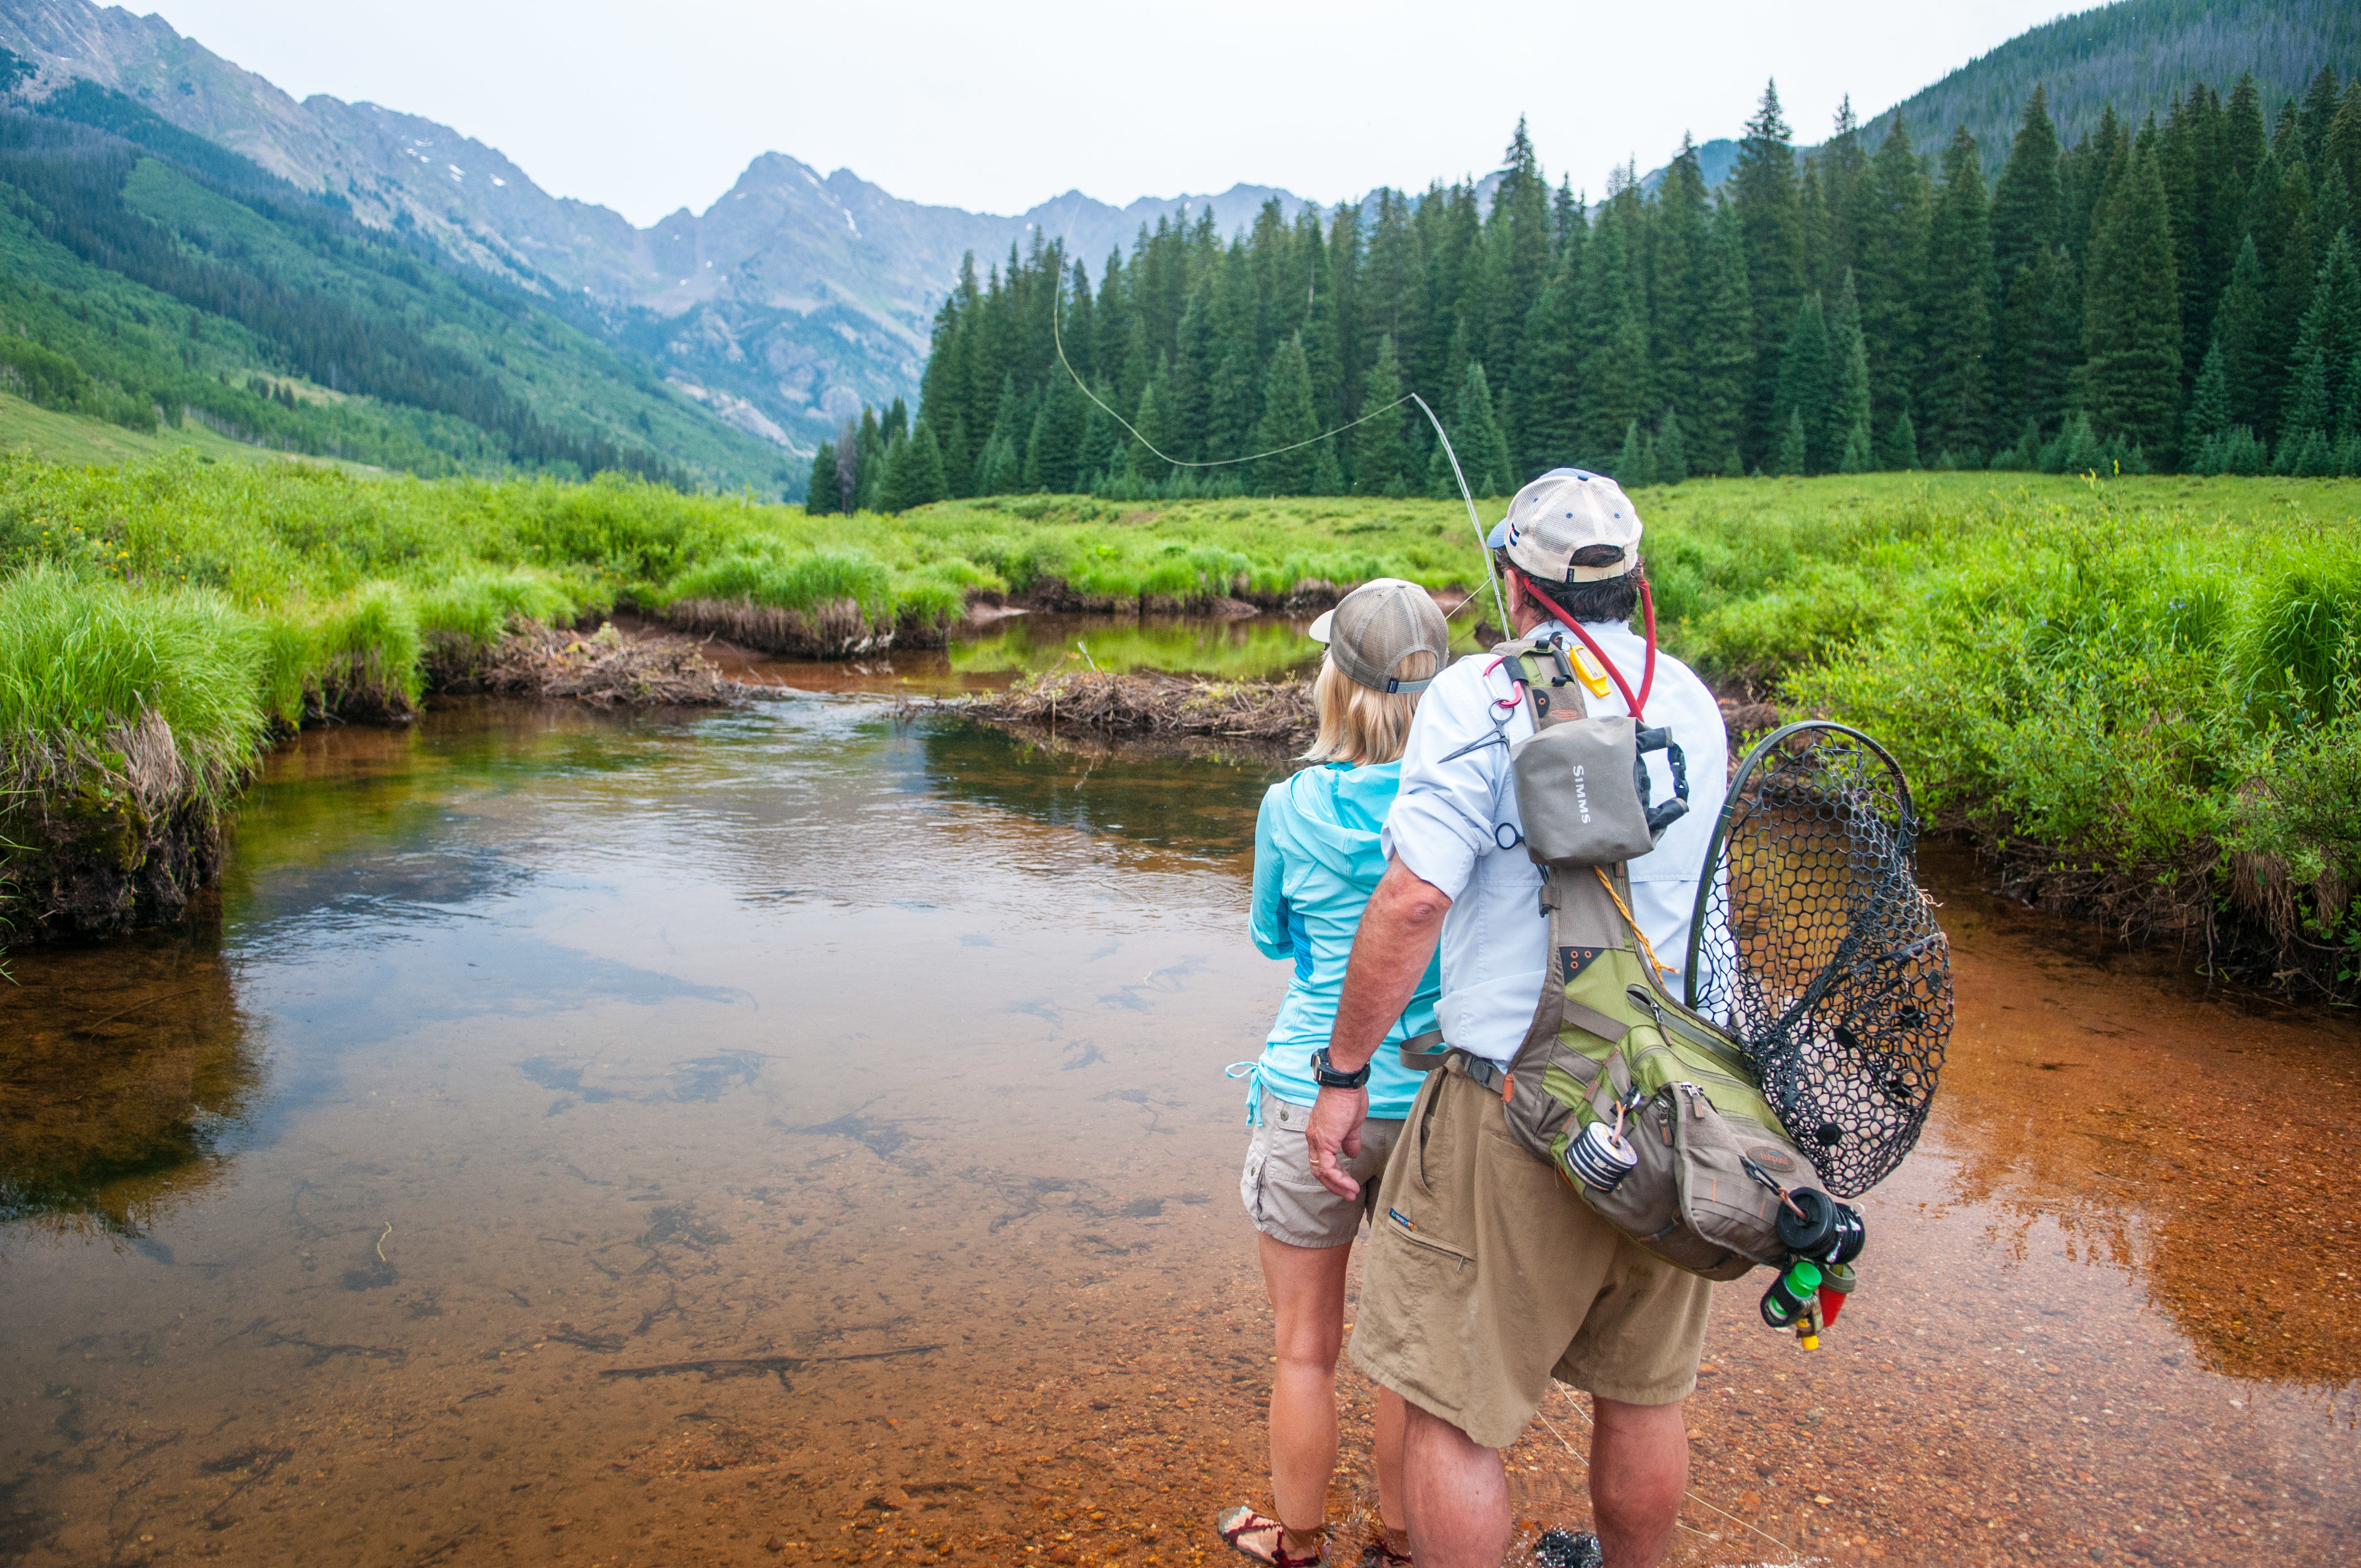 Vail Valley Anglers: Hike & Fish Trip